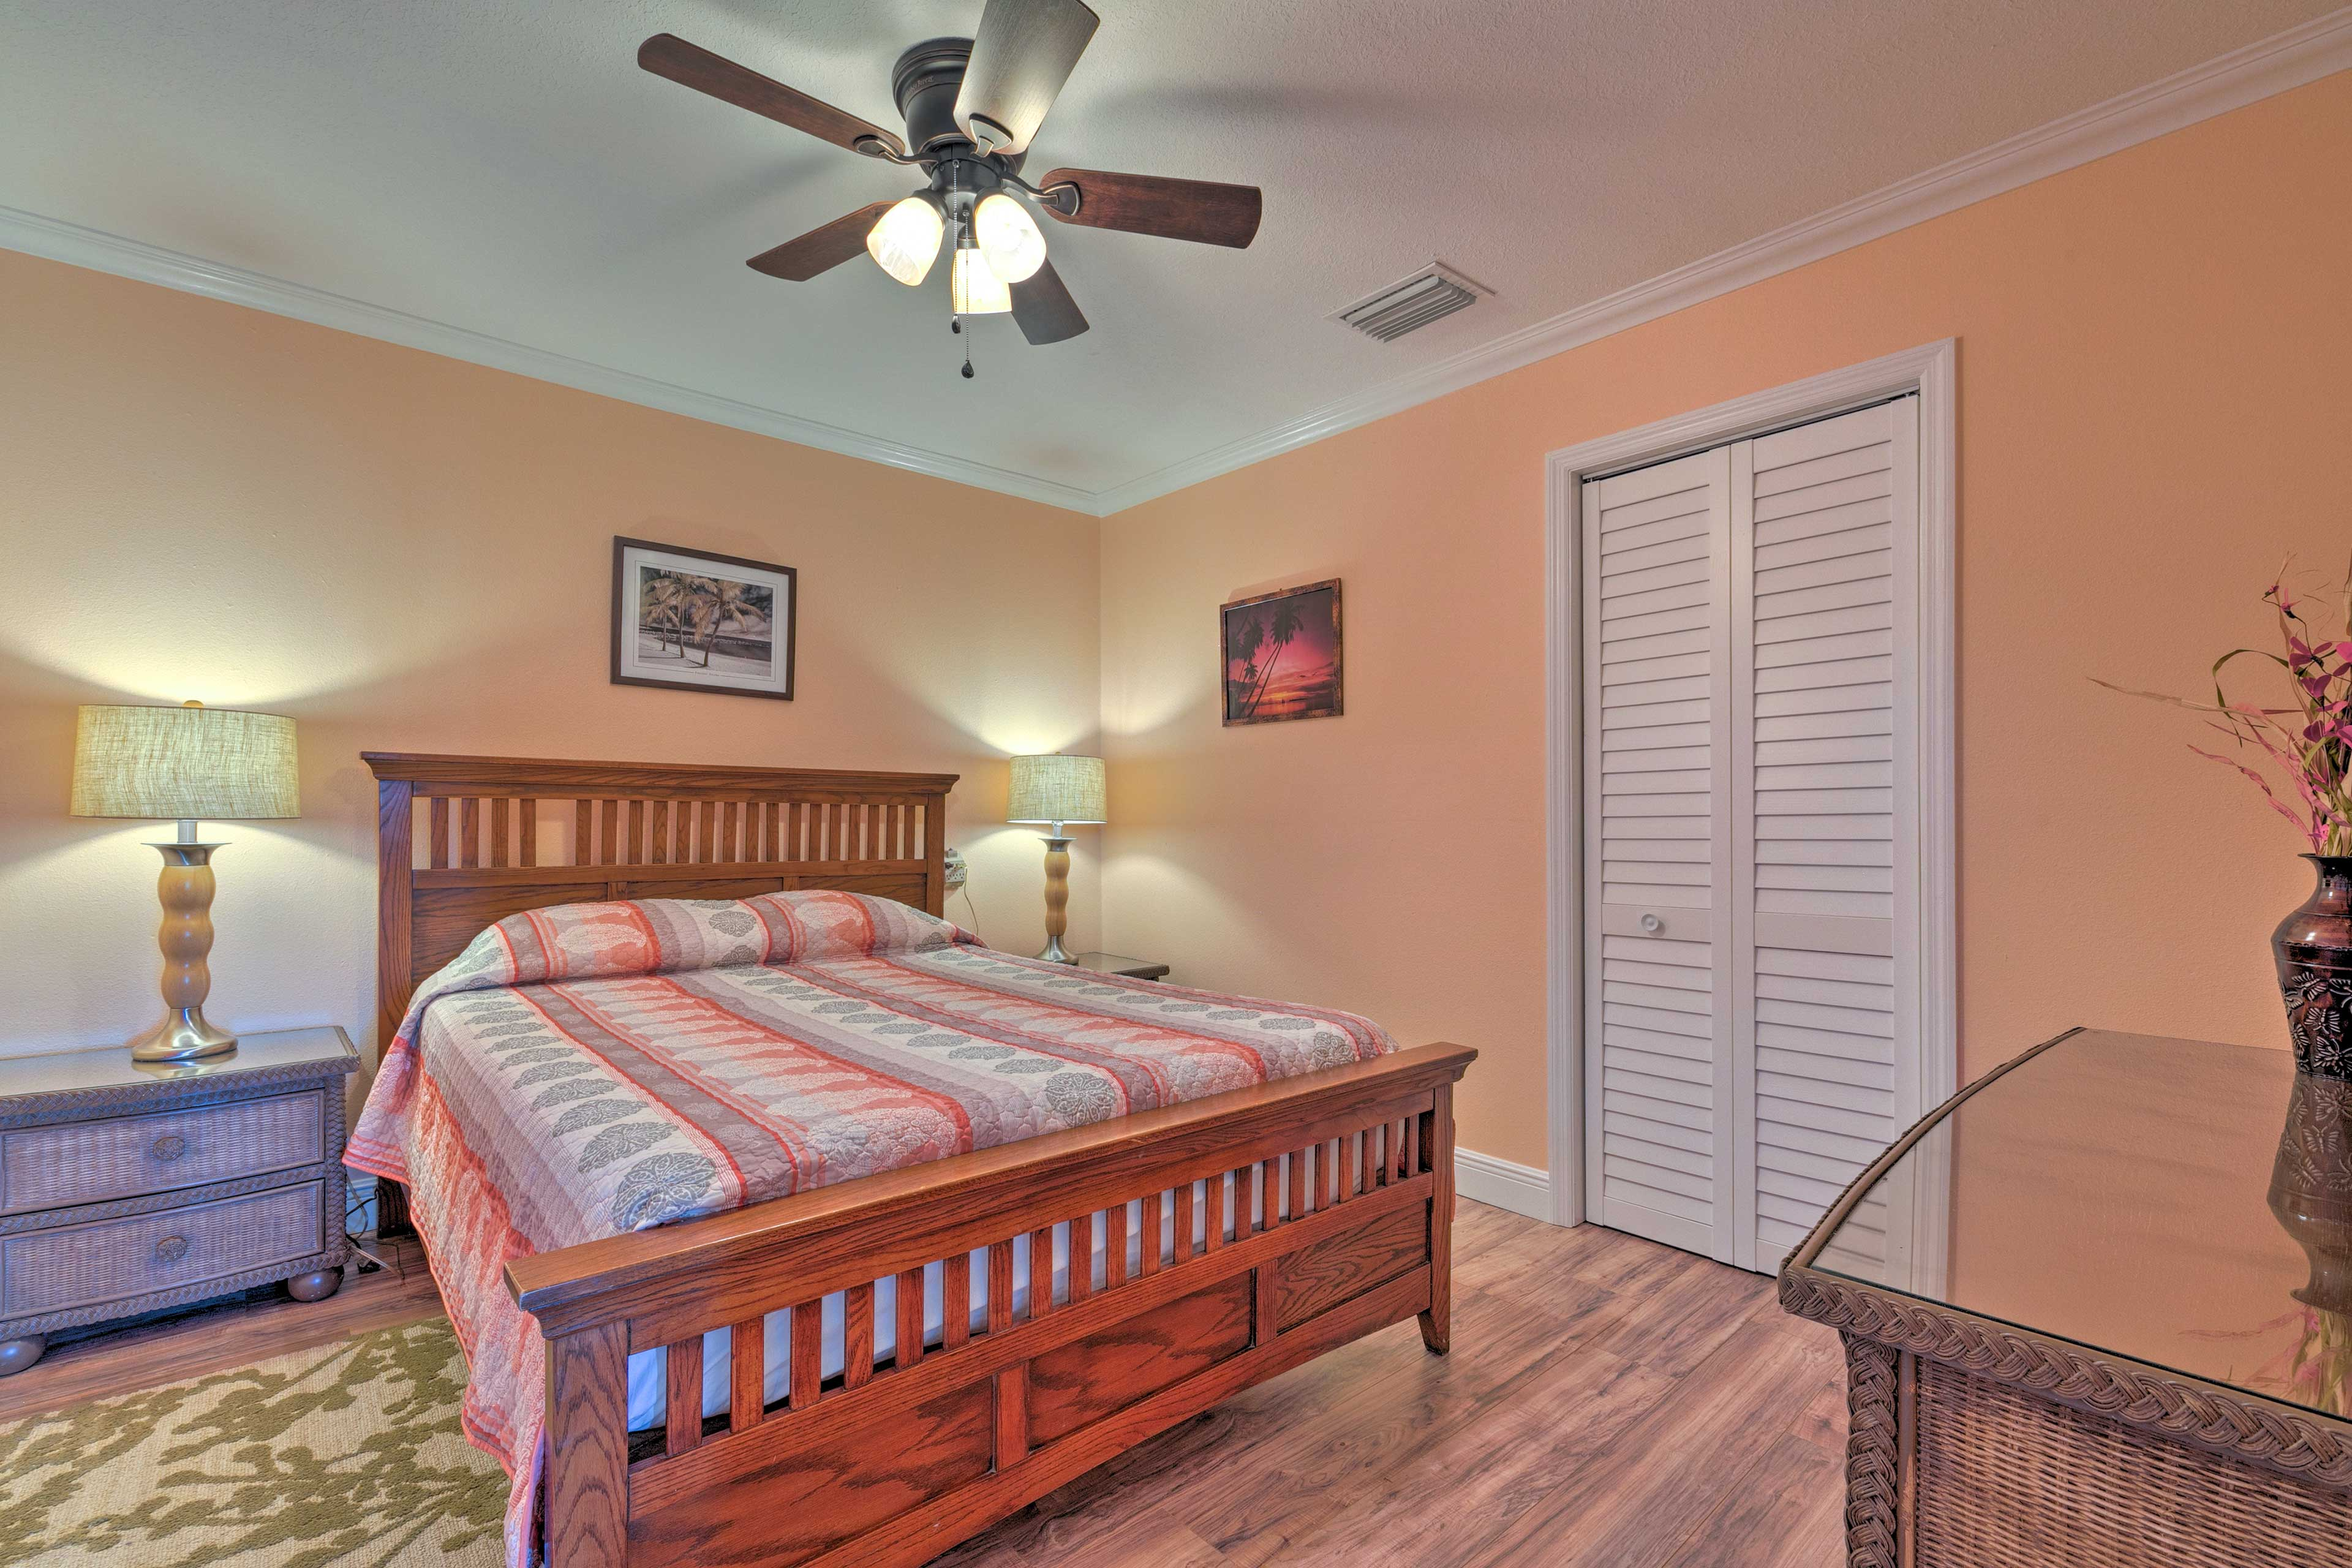 A queen bed also furnishes the second bedroom.